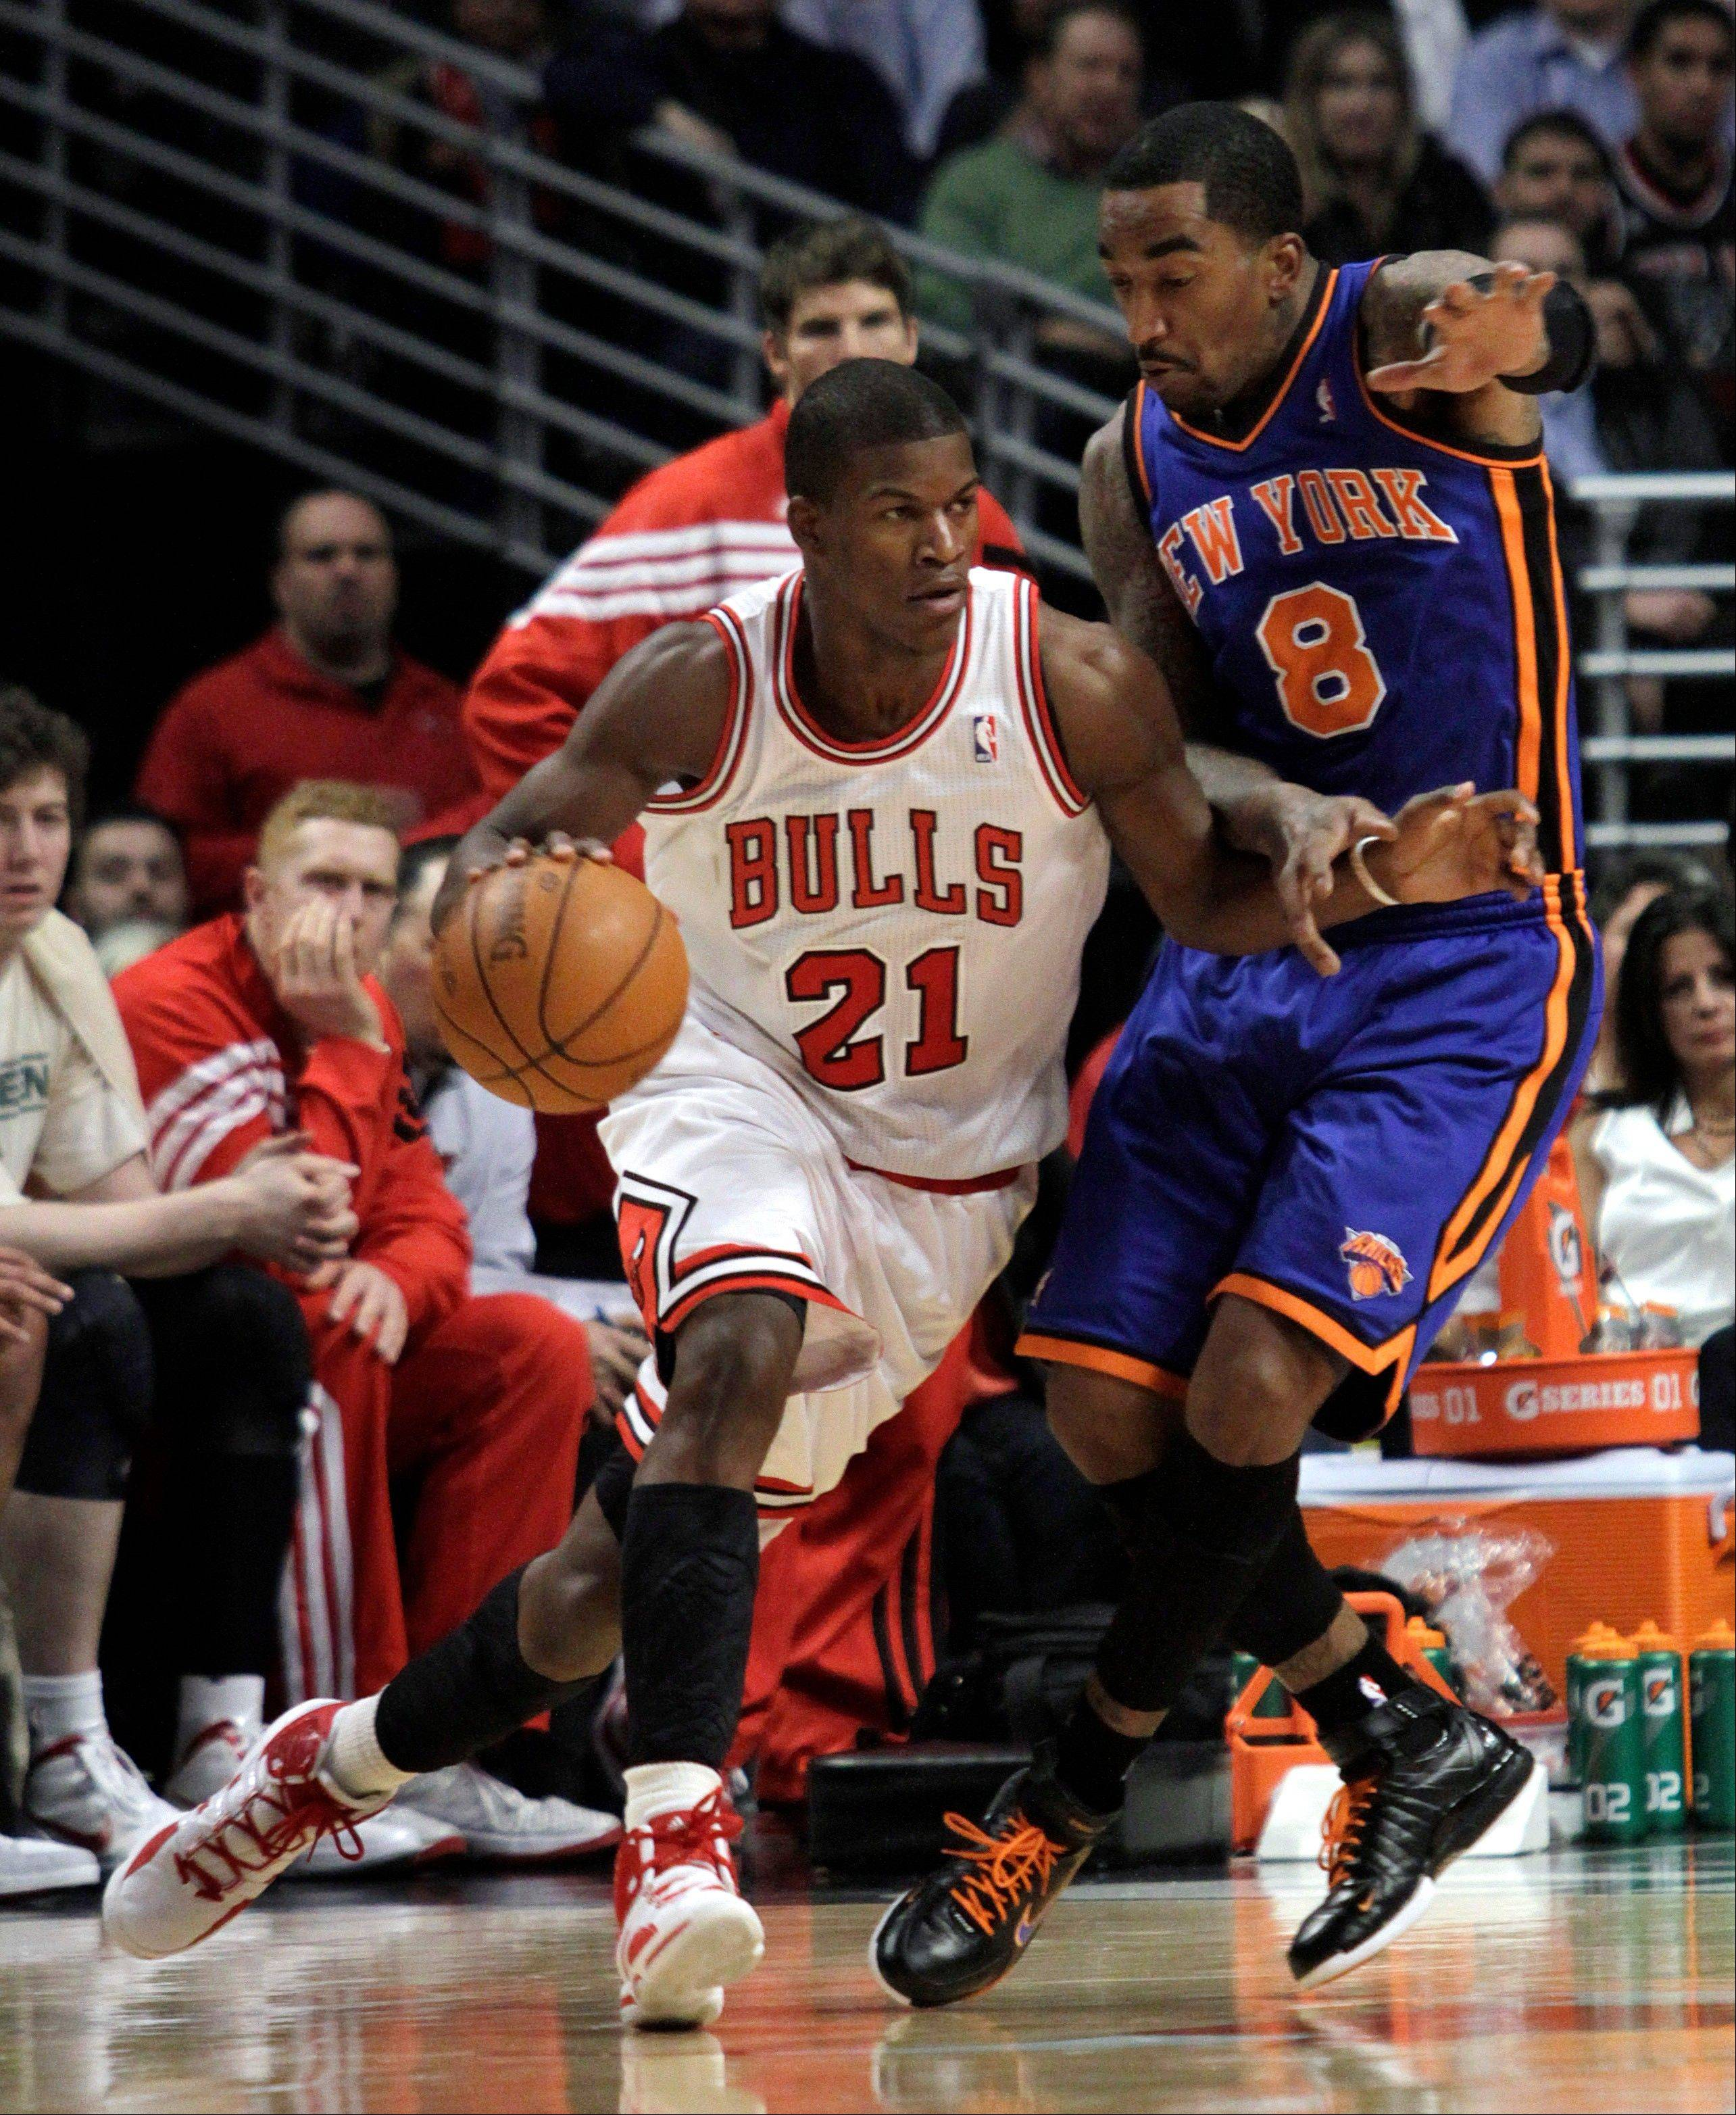 Bulls forward Jimmy Butler, seen here during his rookie season, should see an expanded role this season. But it comes with the departure of close friend Ronnie Brewer to the Knicks.